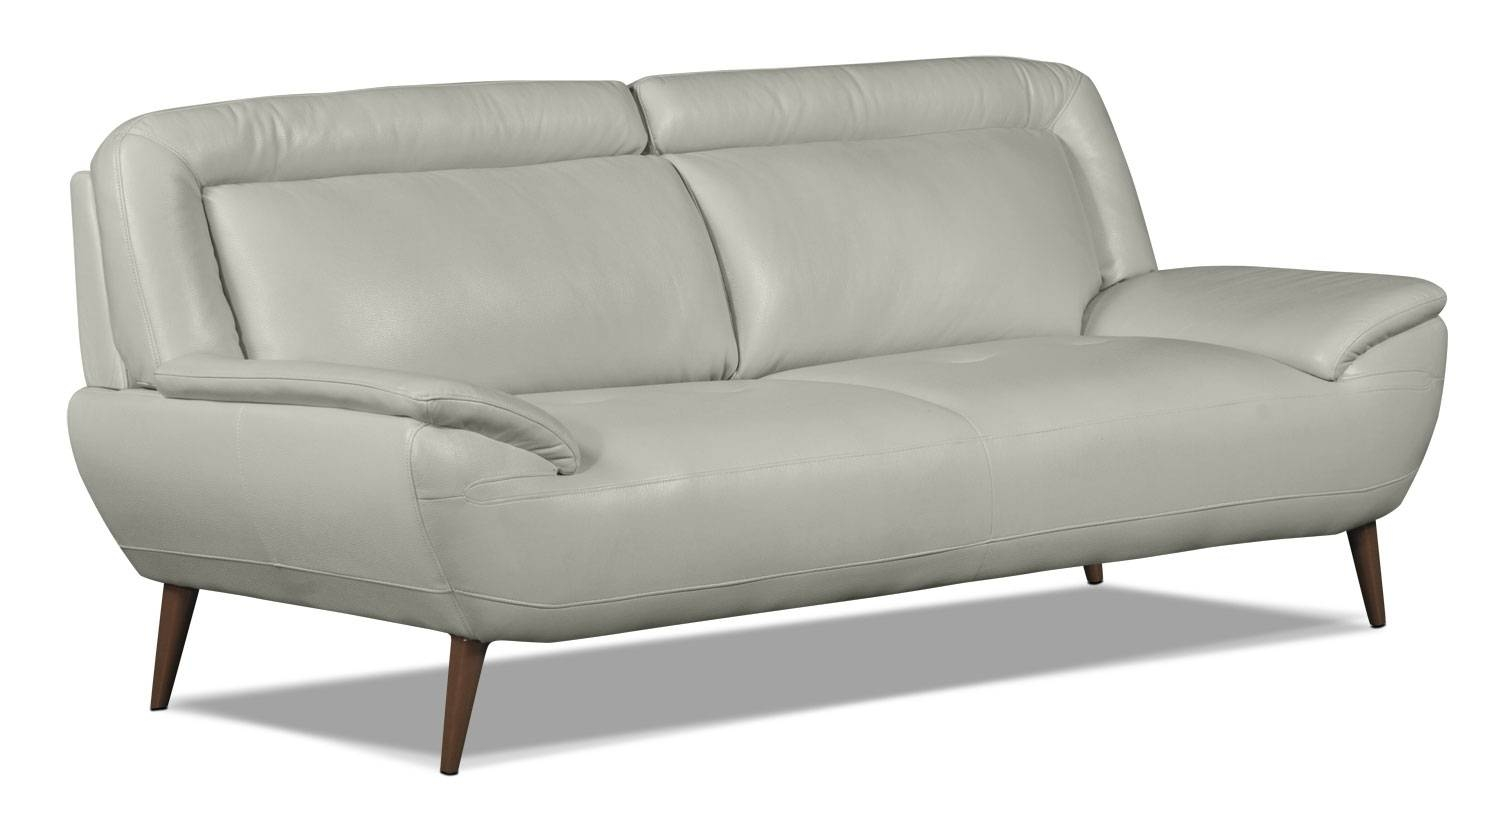 Roxy Leather Look Fabric Studio Size Sofa – Beige | The Brick Inside Cindy Crawford Leather Sofas (View 11 of 15)